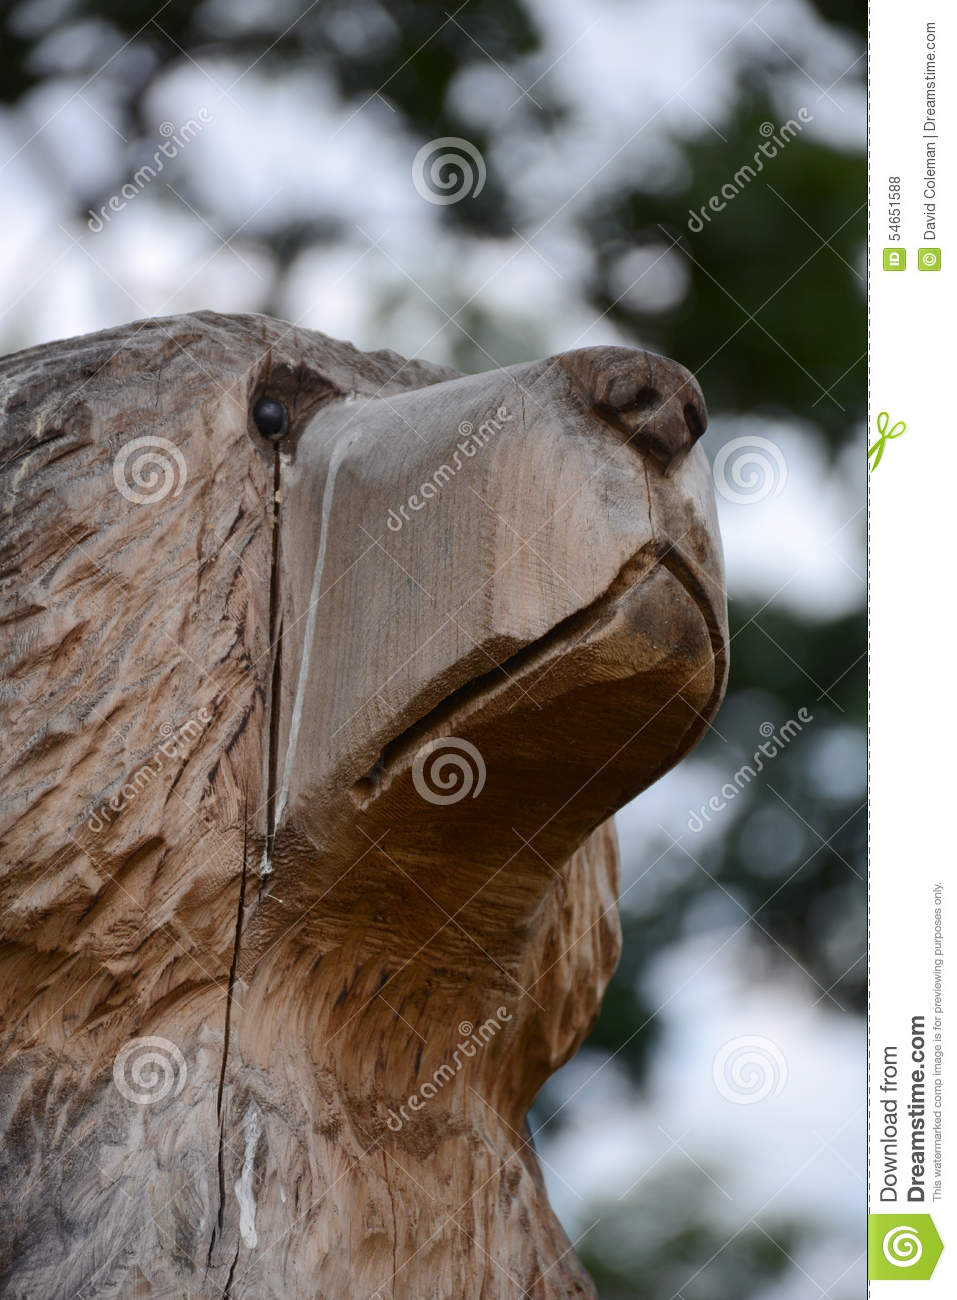 Wooden Bear Stock Photo Image Of Statue Head Wooden 54651588